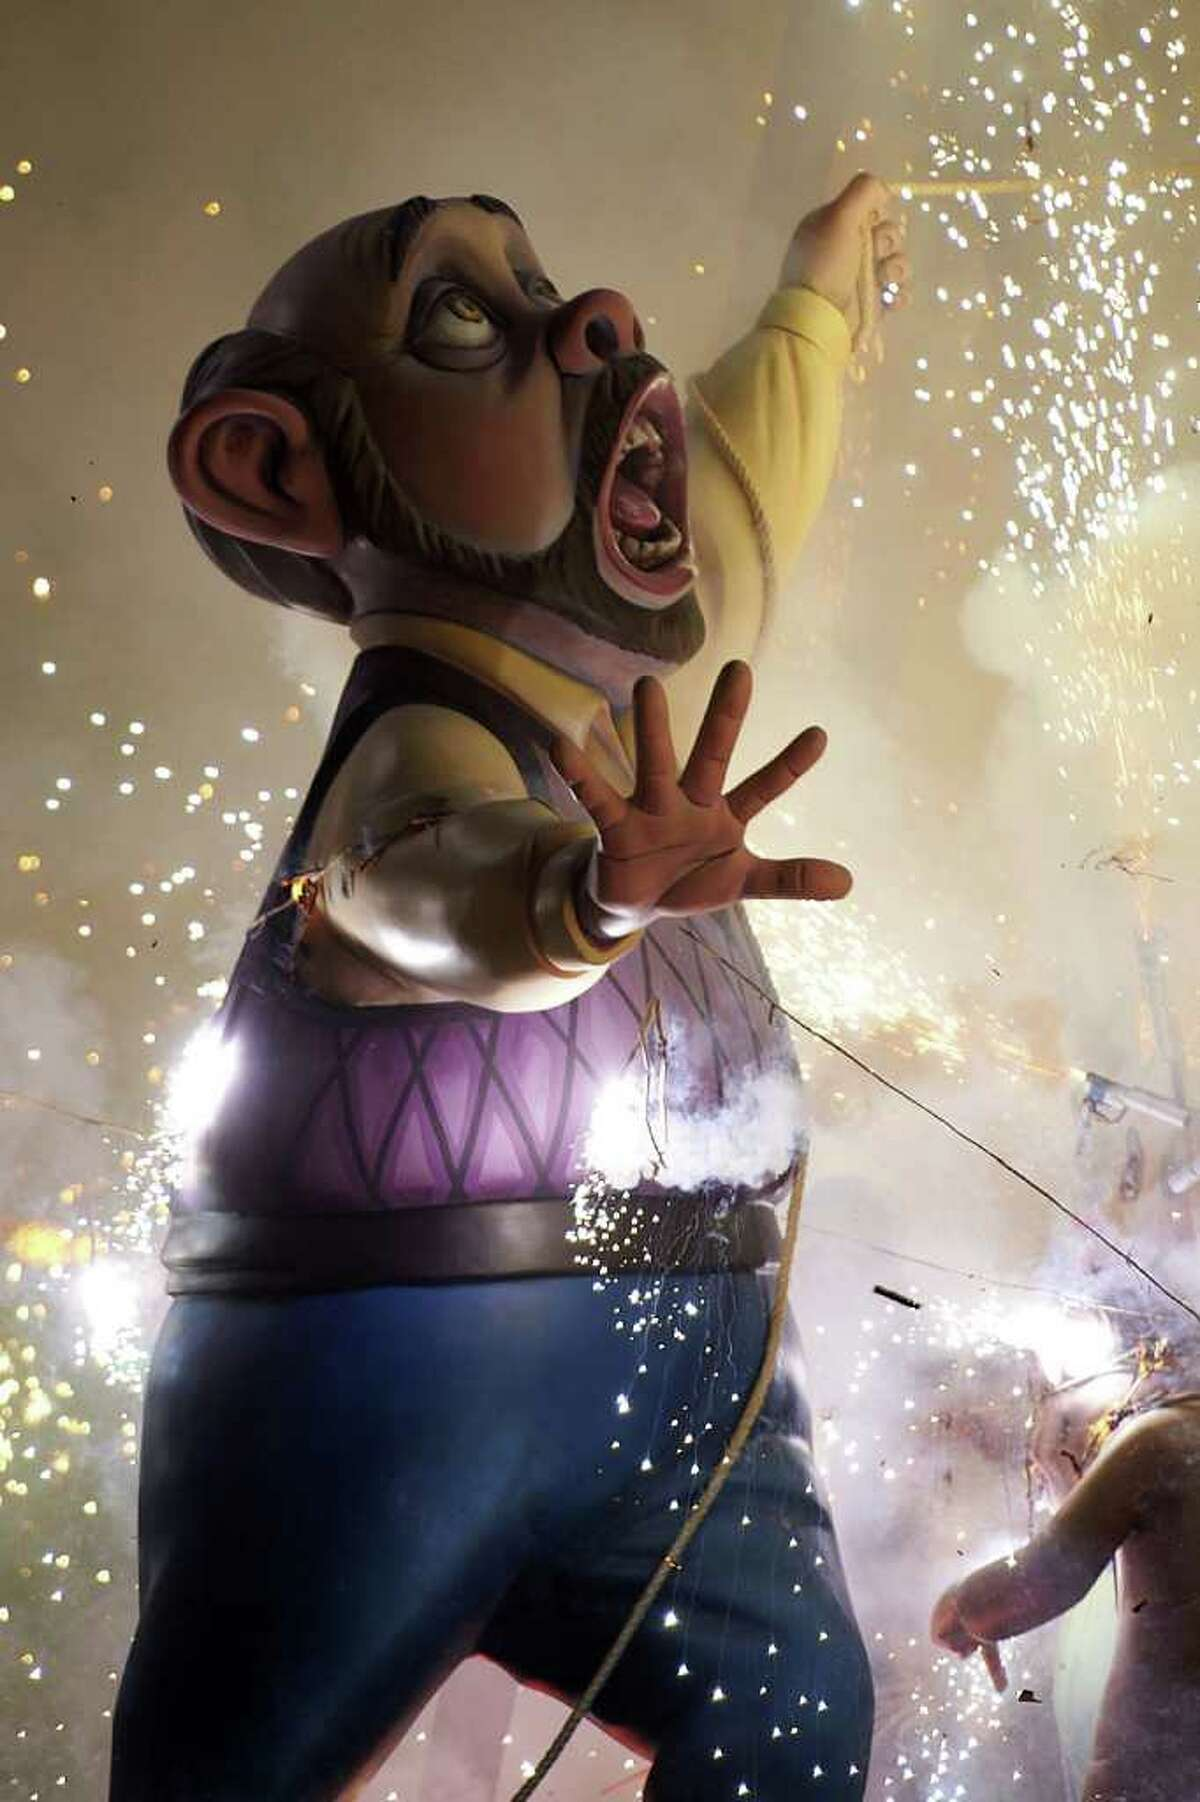 VALENCIA, SPAIN - MARCH 19: A combustible 'Ninot' caricatures burn during the last day of the 'Fallas' festival on March 19, 2012 in Valencia, Spain. The festival, which runs March 15 - 19, celebrates the arrival of spring with fireworks, fiestas and bonfires.